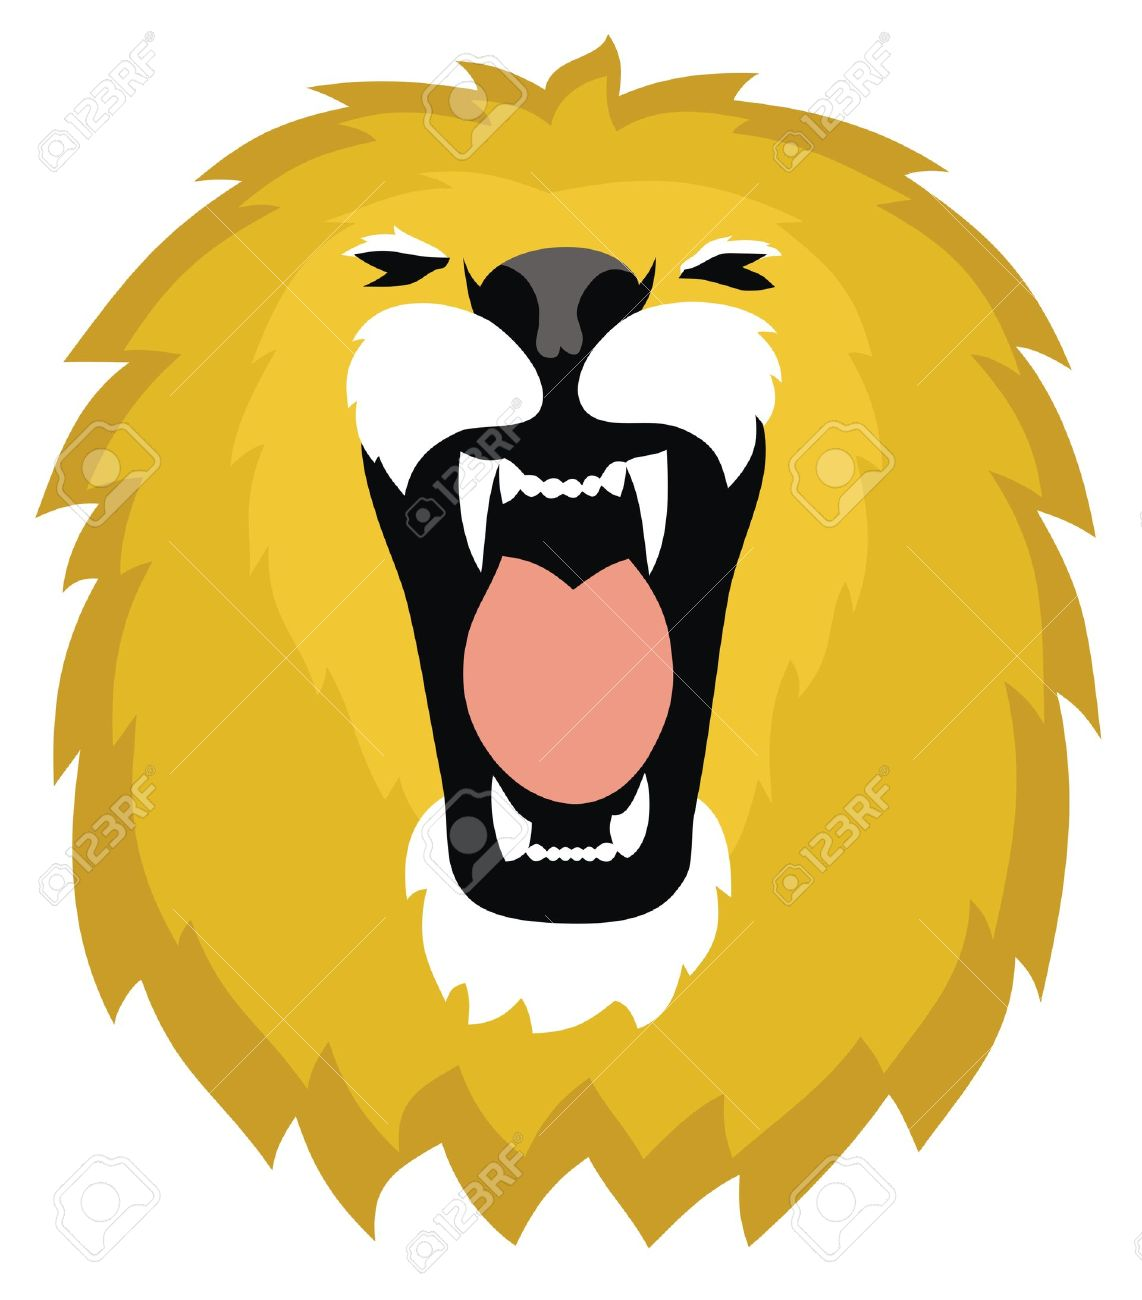 Lion roar clipart.